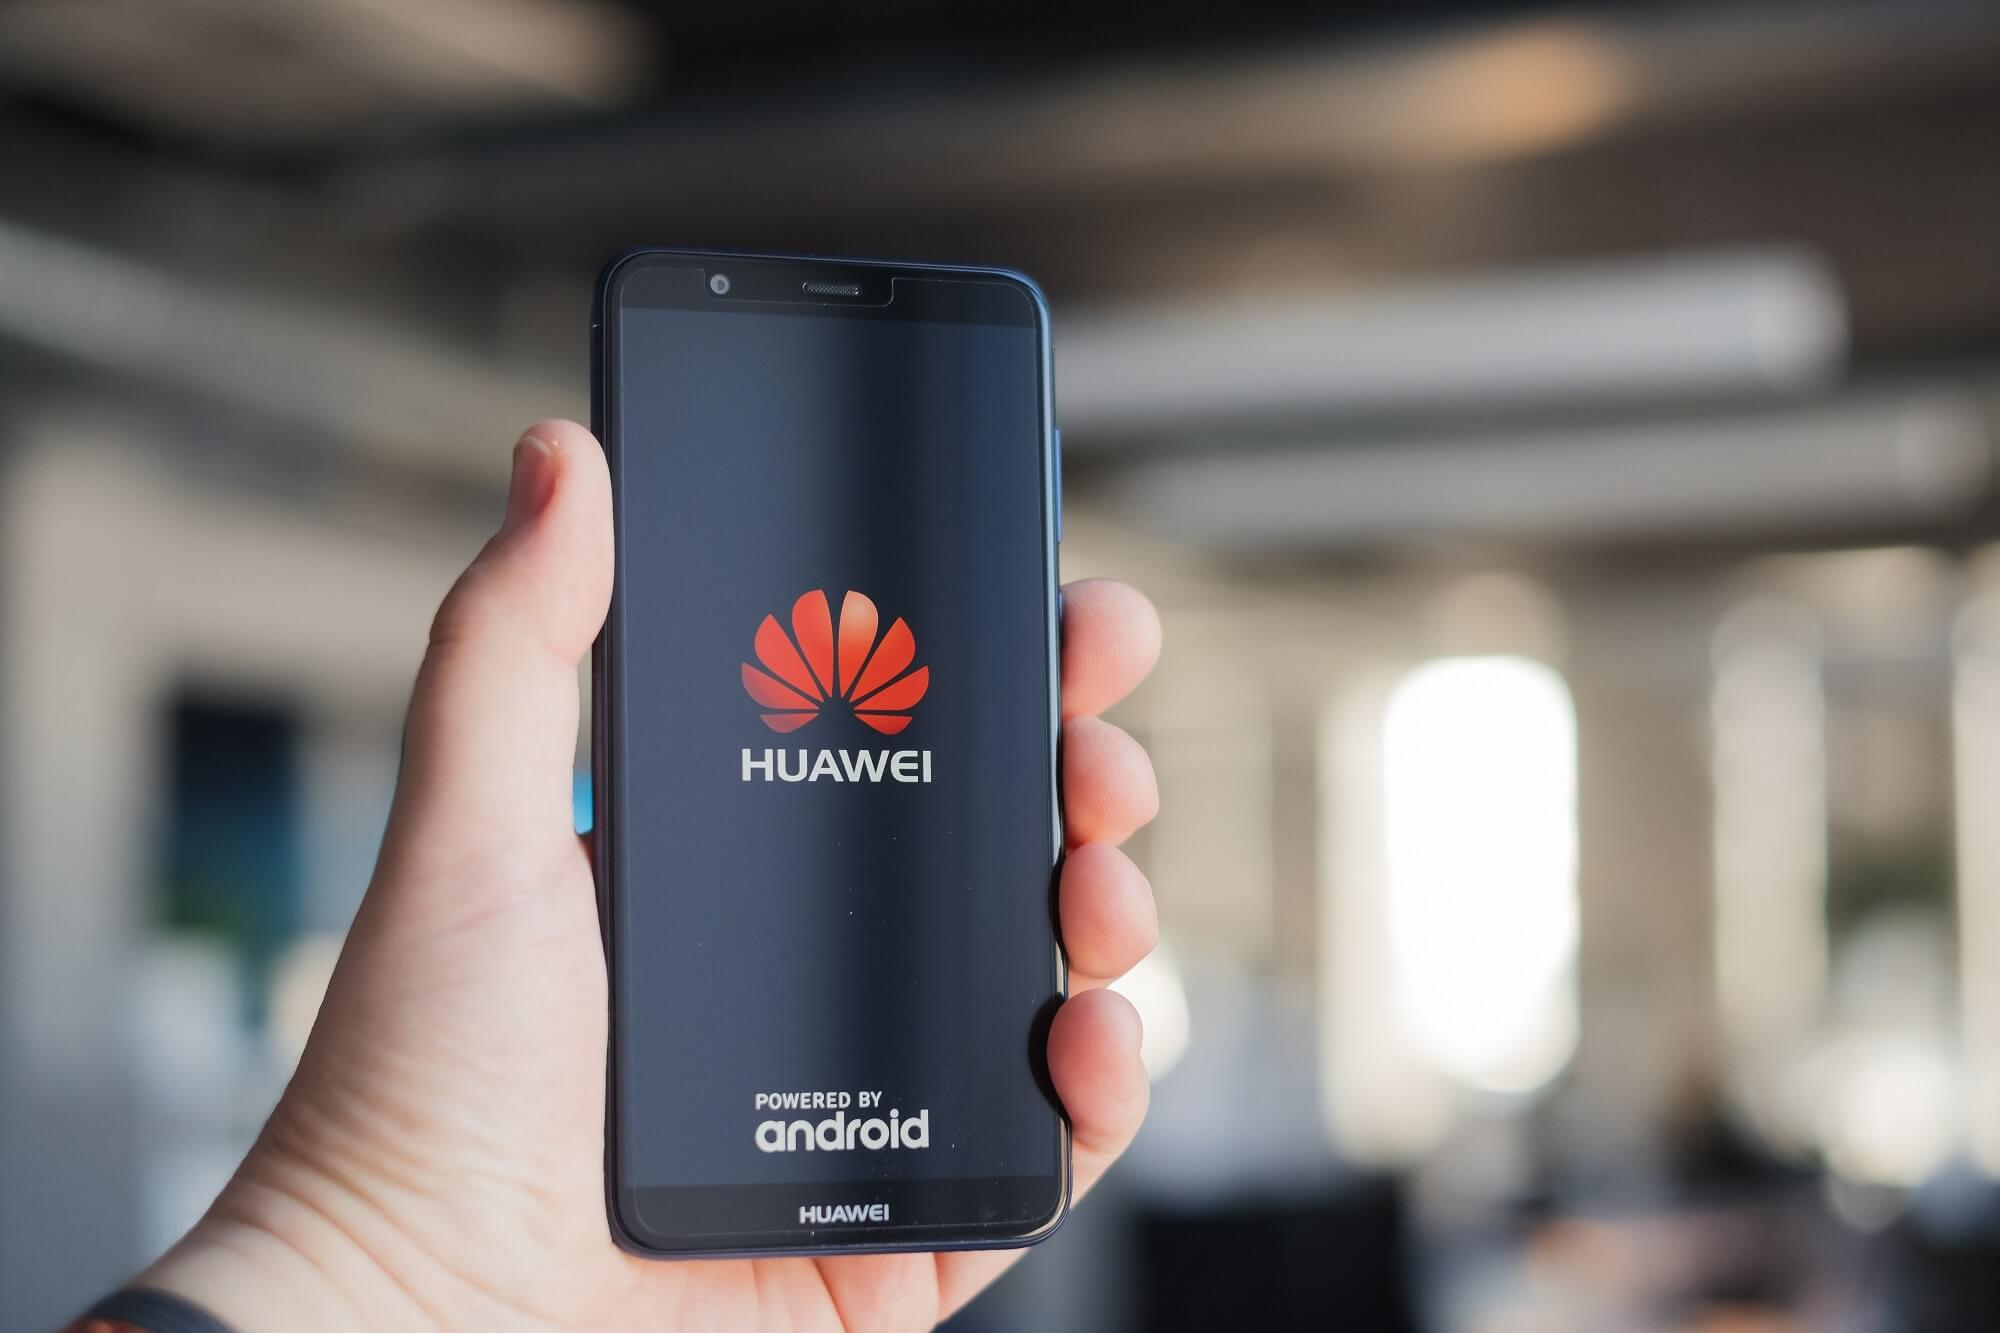 Ads start appearing on Huawei phone lock screens